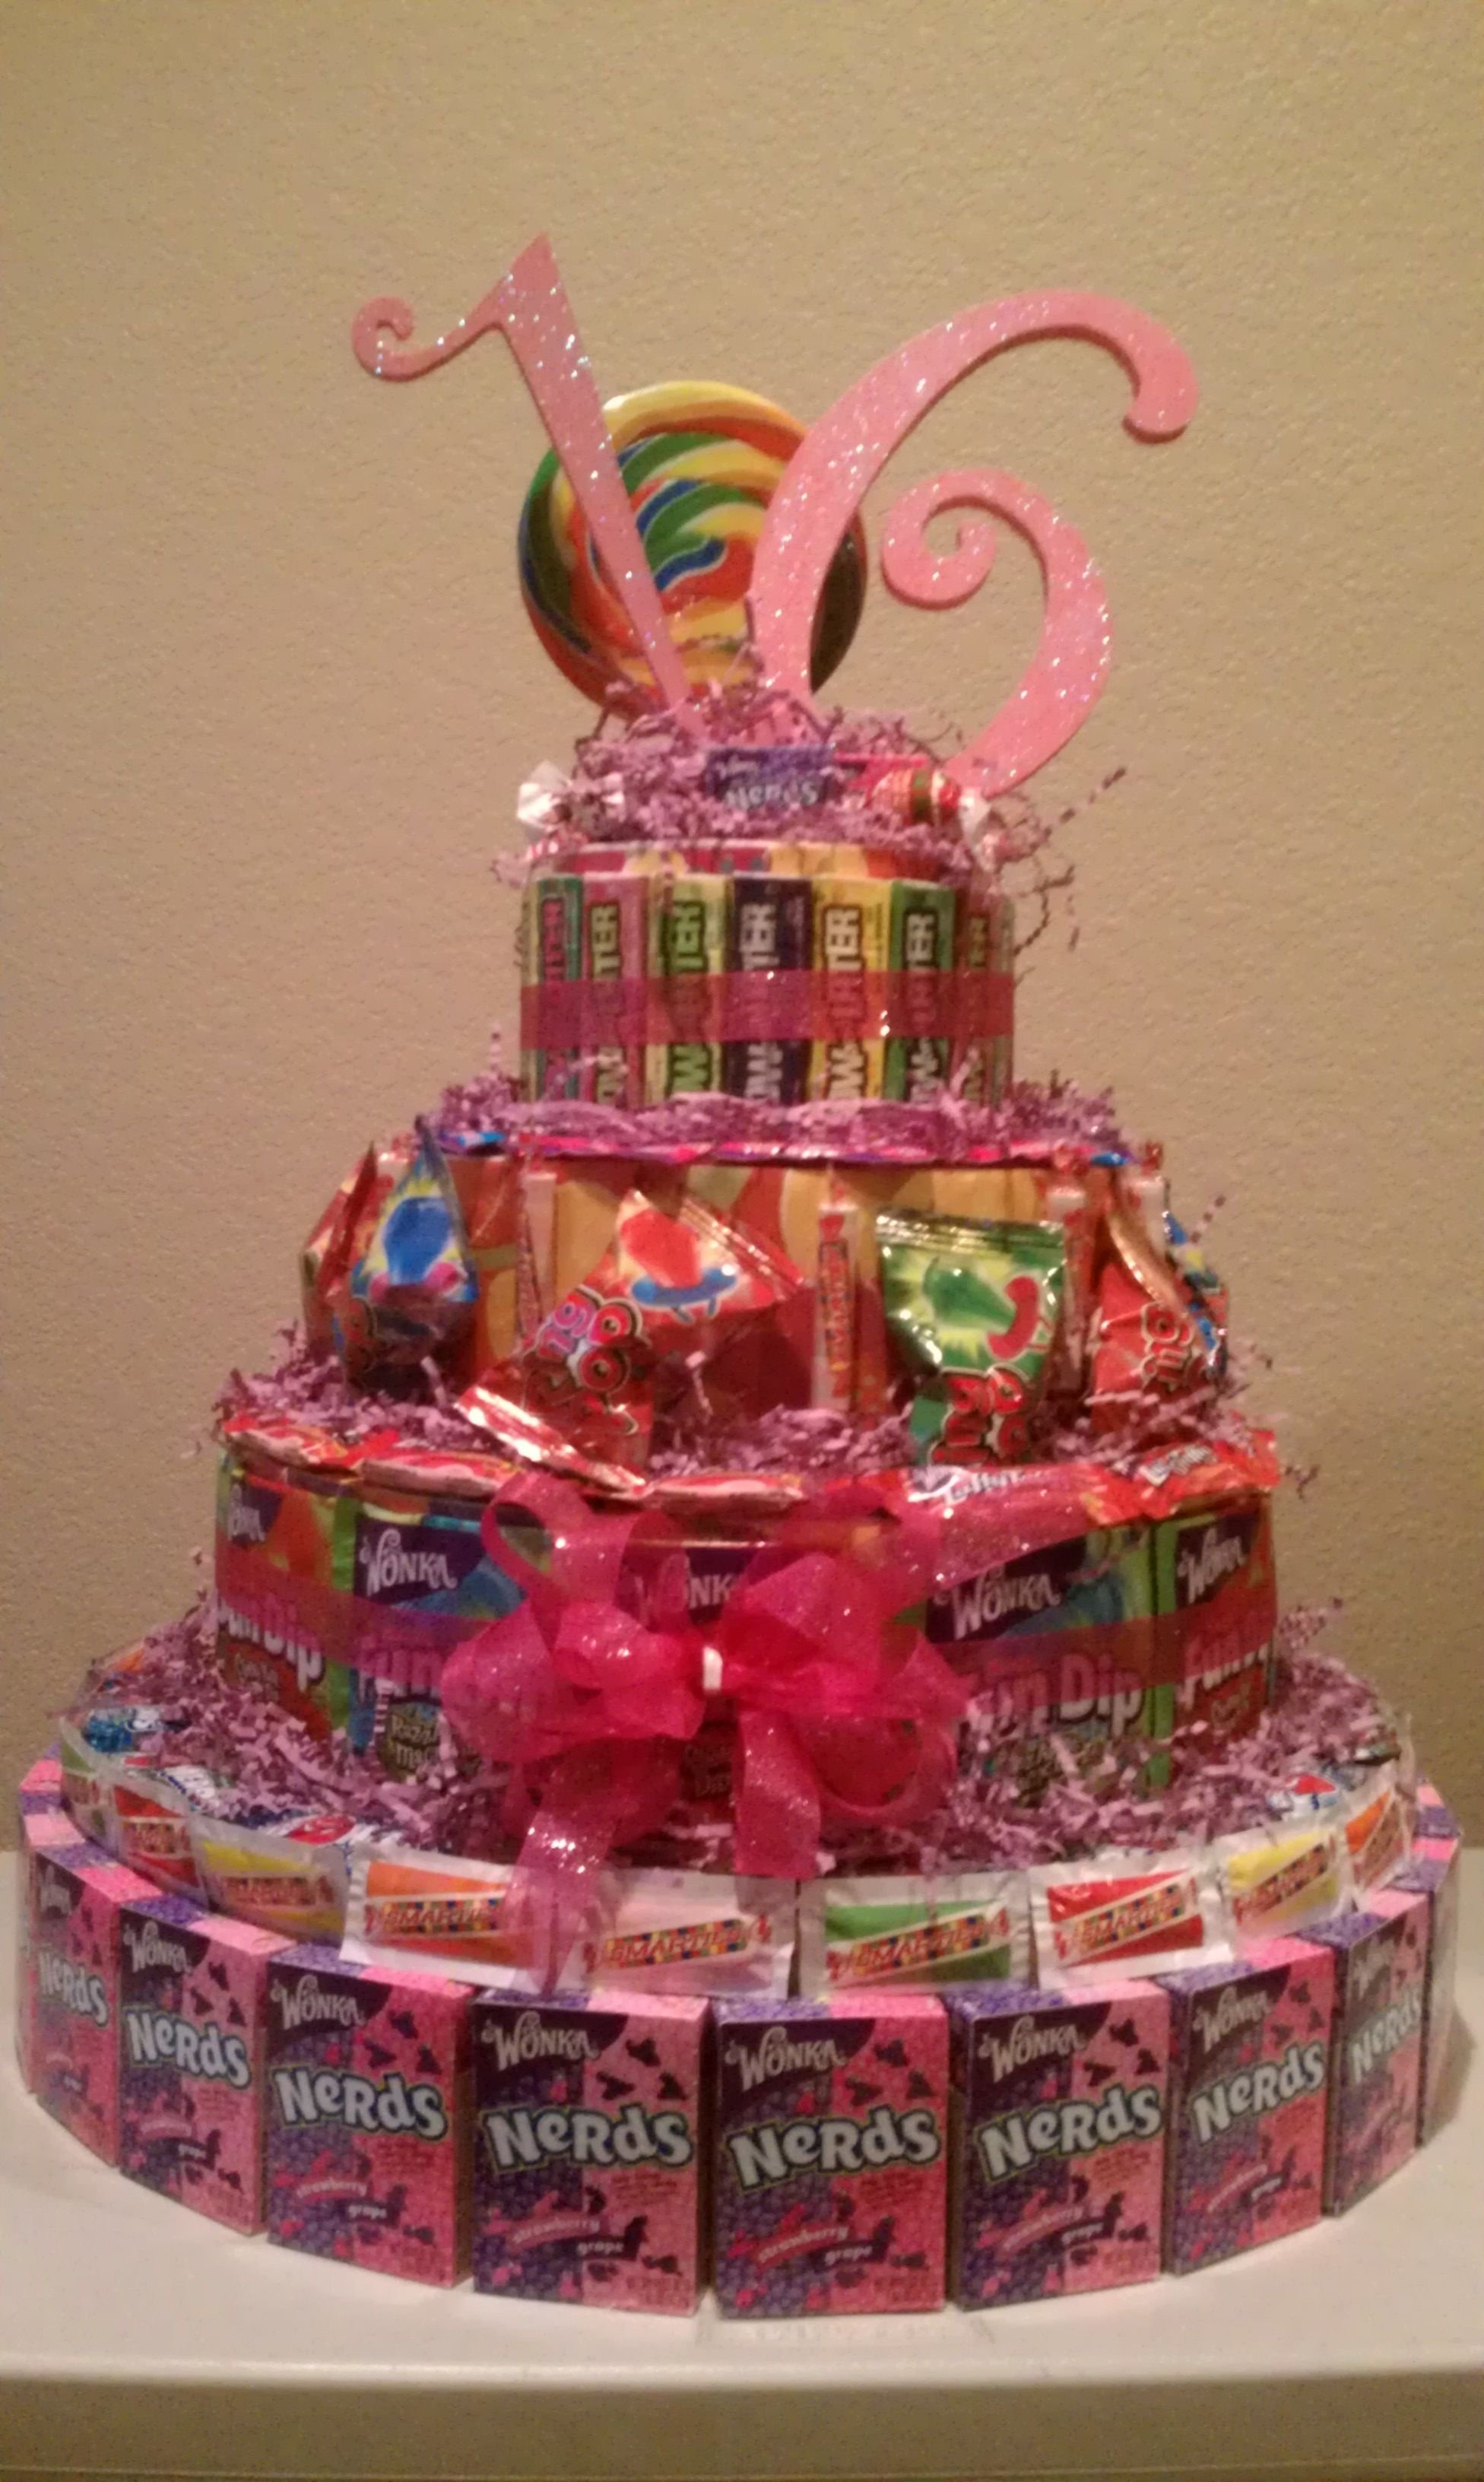 10 Stylish Sweet 16 Gift Ideas For Niece sweet 16 candy cake cool idea stacey party ideas pinterest 2